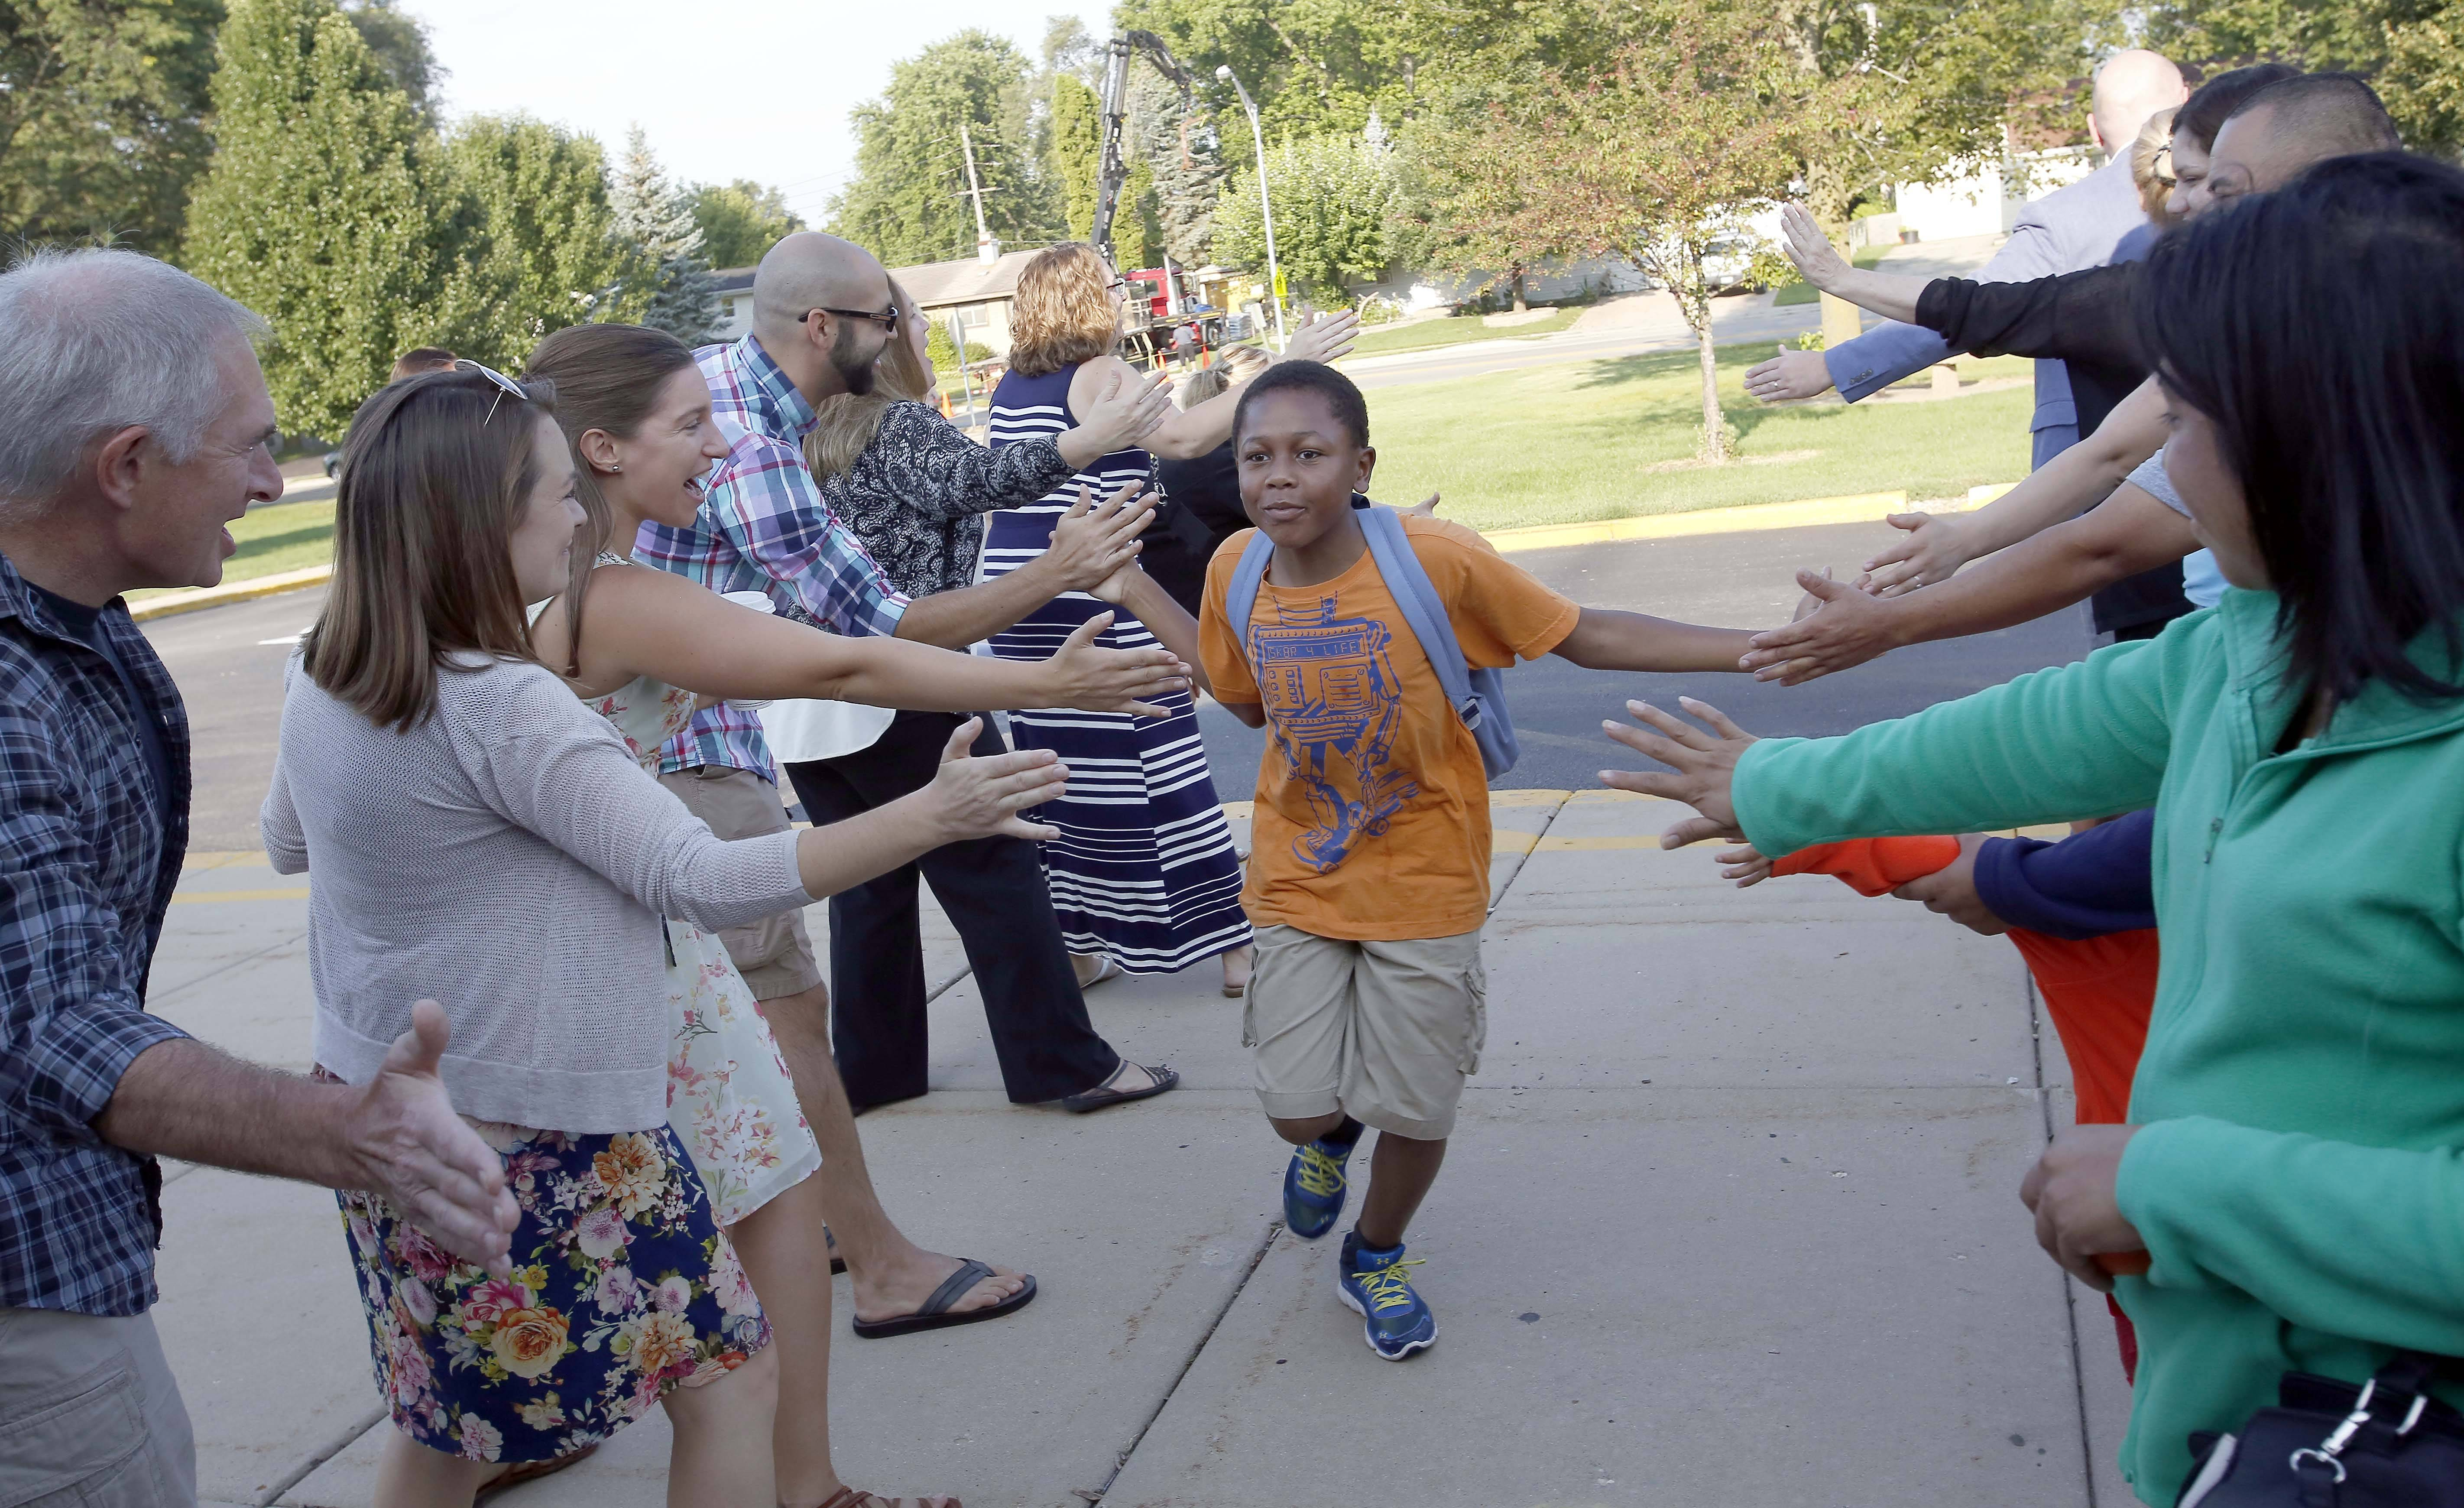 Ten-year-old Dominick Roman runs down the line of high-fives on his way to school Tuesday during the first day of classes at Golfview Elementary School in Carpentersville.